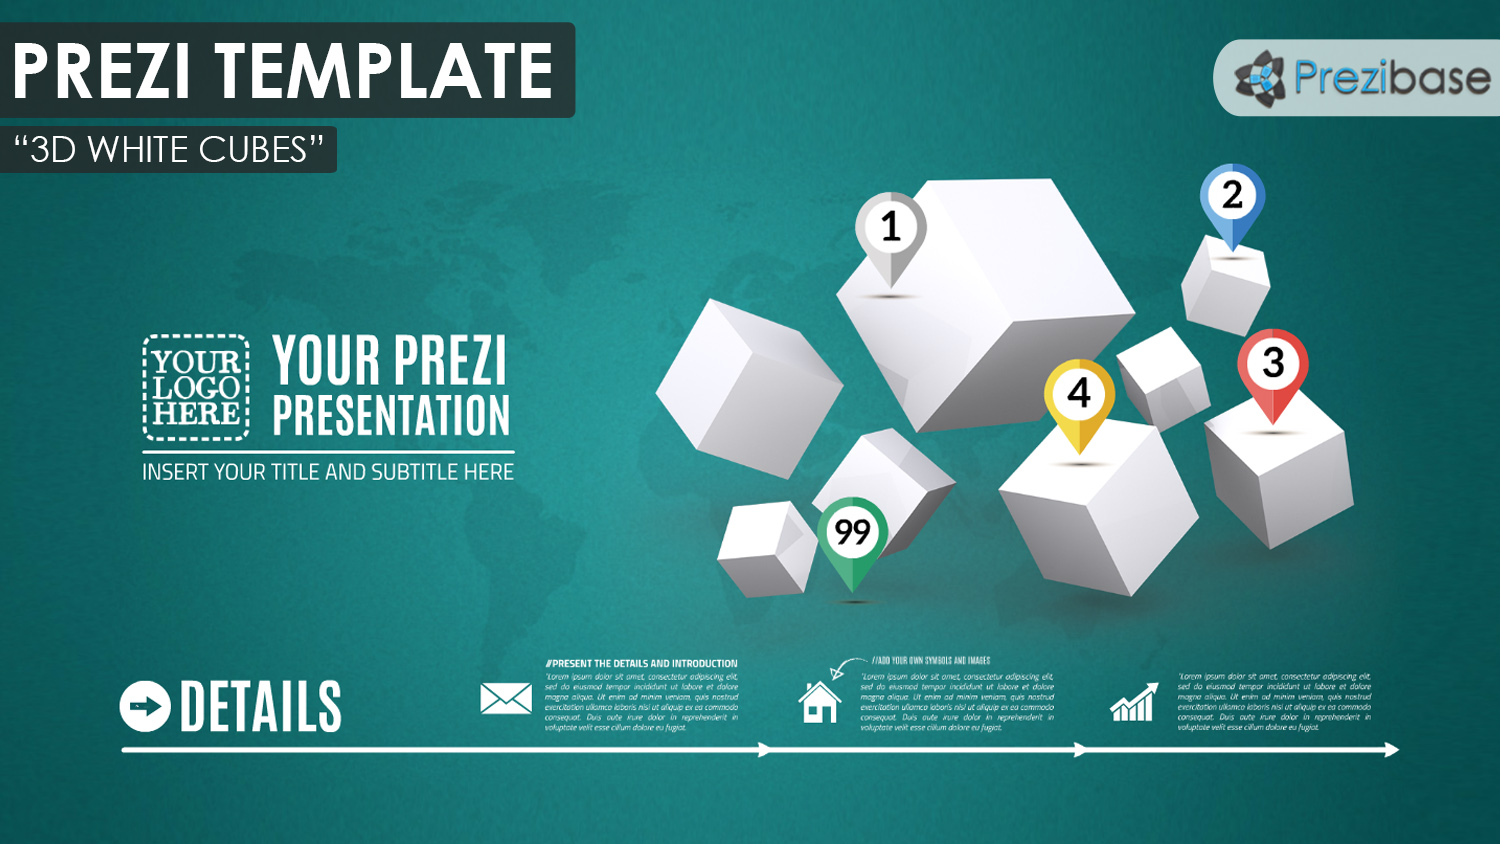 Infographic diagram prezi templates prezibase 3d white cubes squares infographic business prezi template friedricerecipe Choice Image